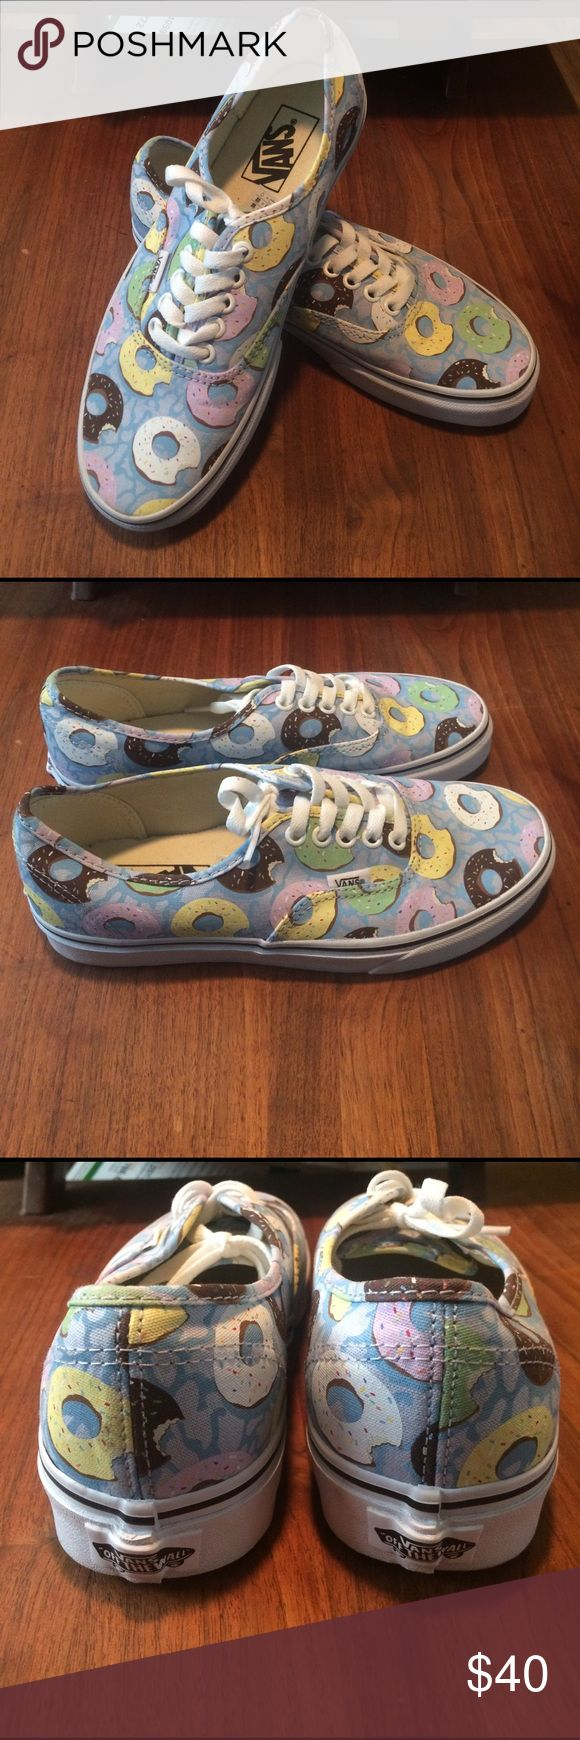 Vans yummy donut shoes! New! 🍩🍩 Brand new Women's size 8. Vans Shoes Sneakers